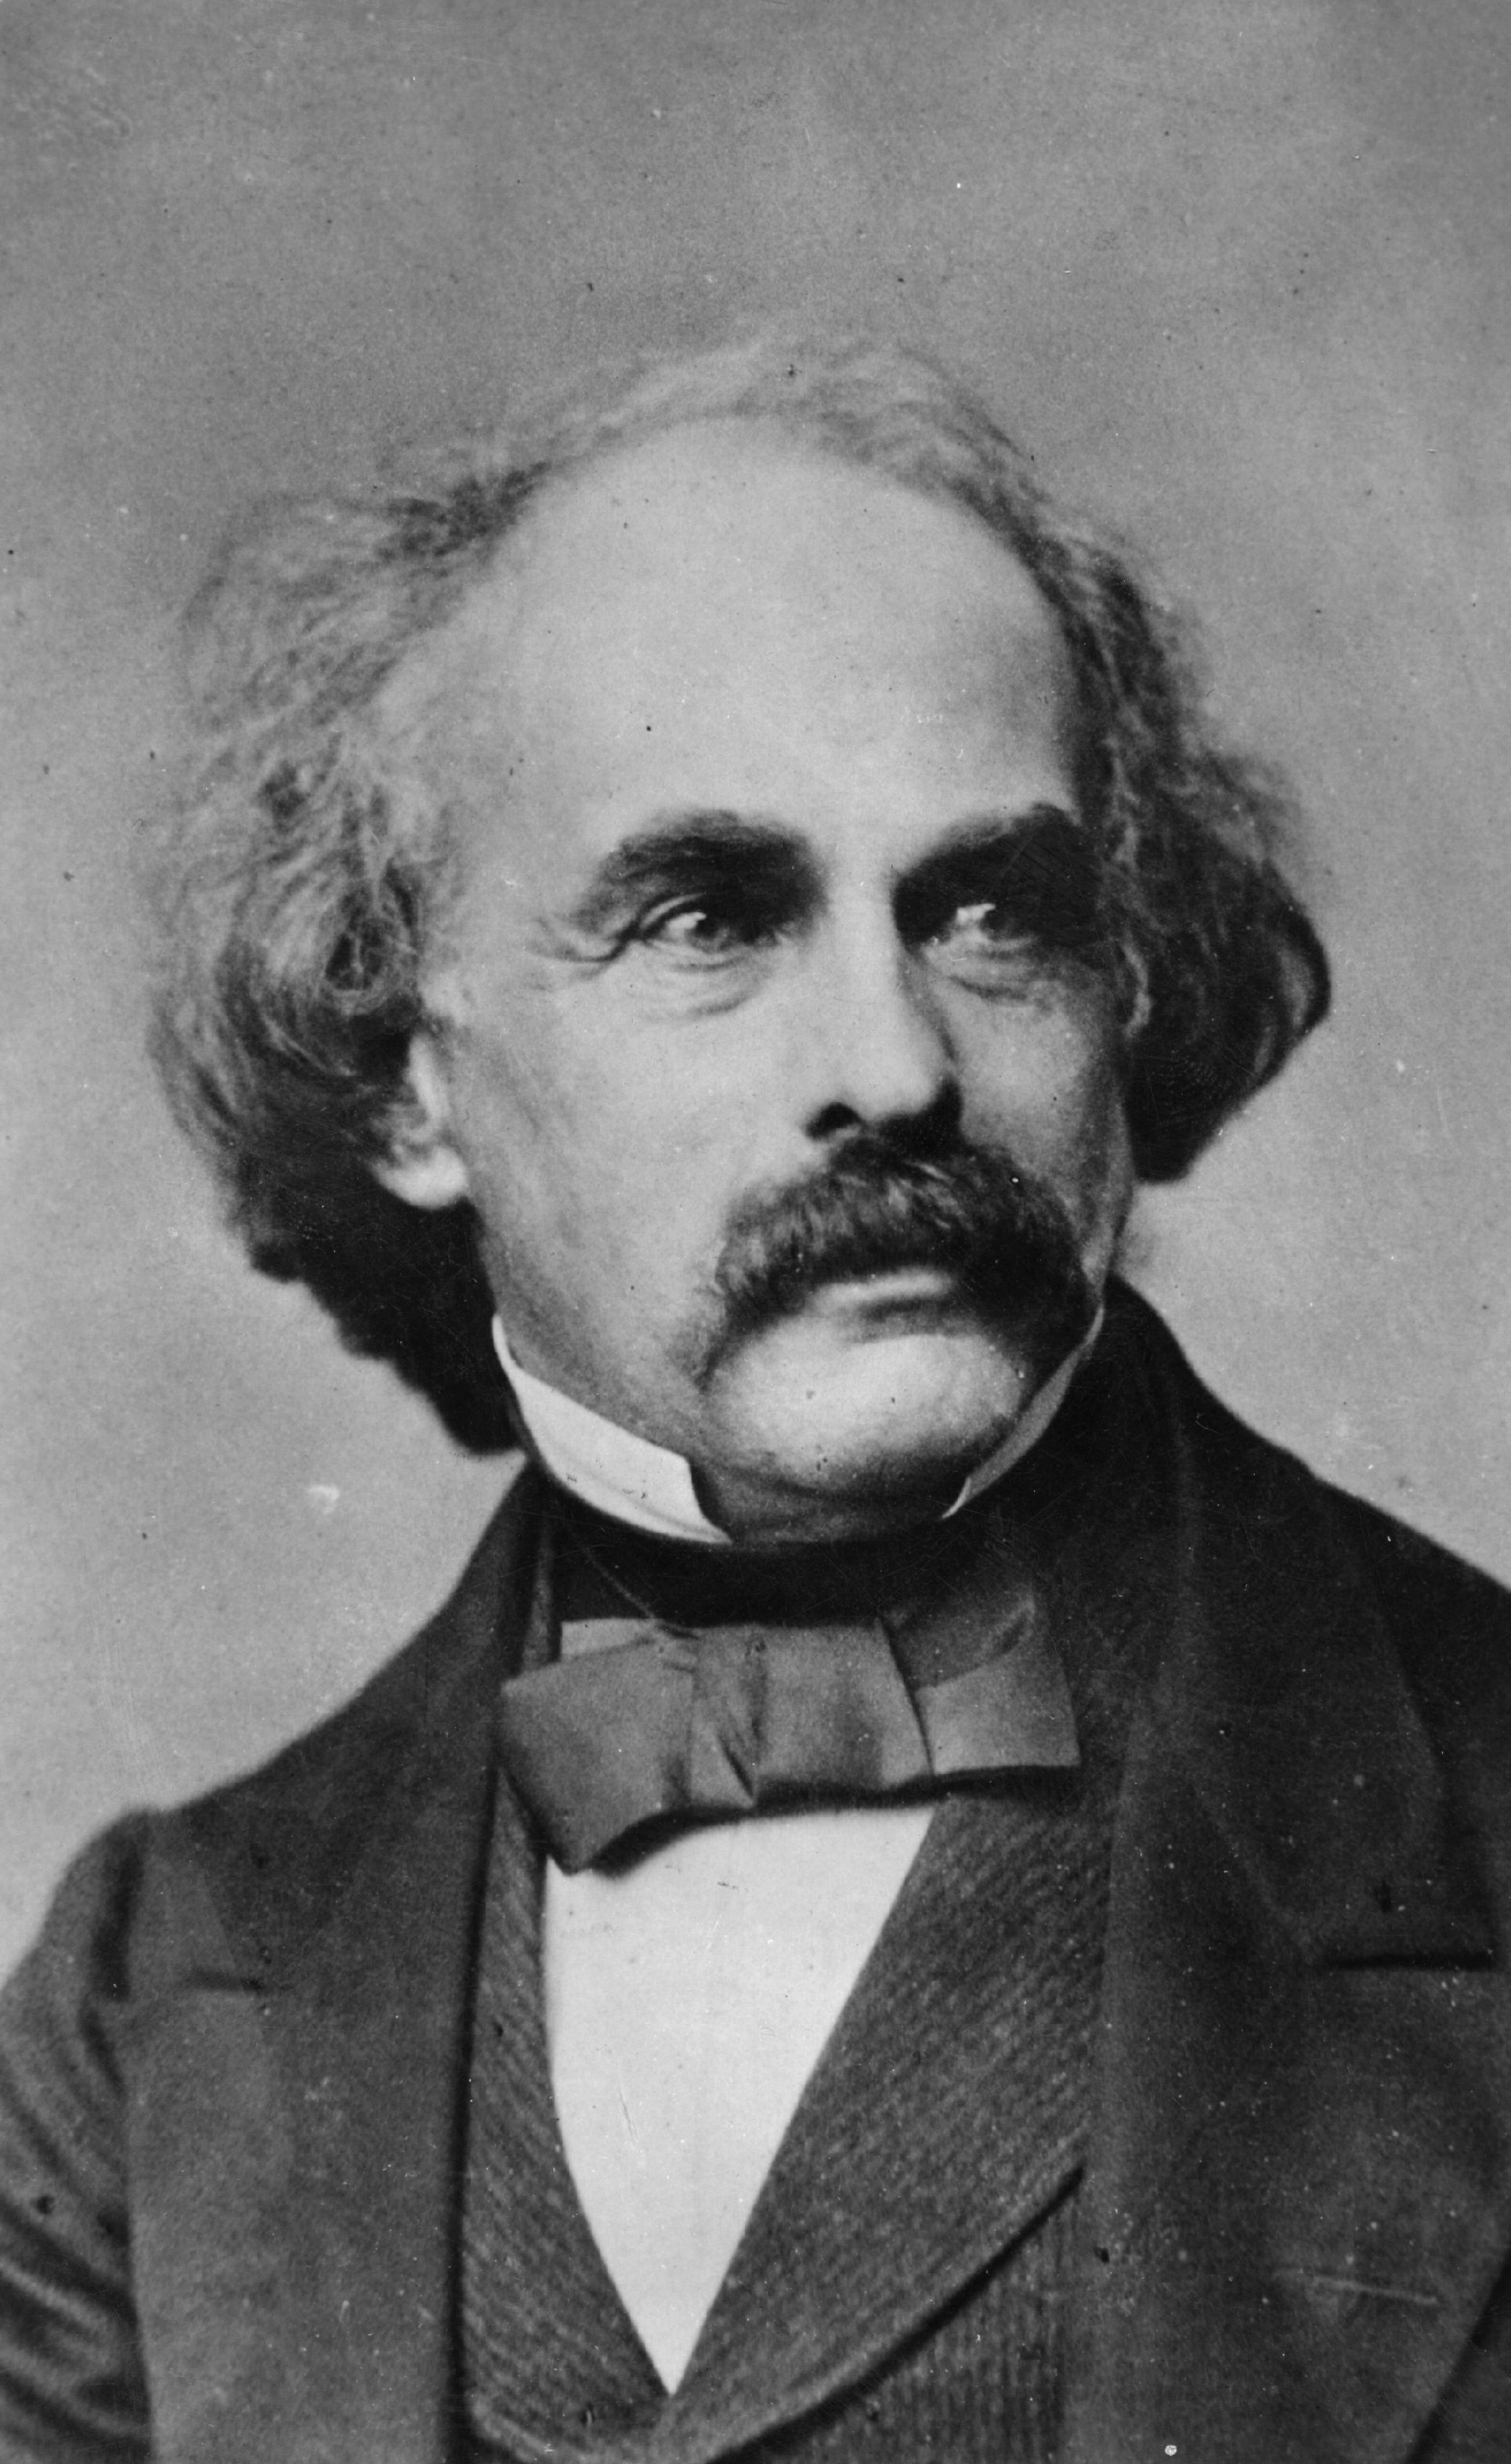 a biography of nathaniel hawthorne the american novelist Nathaniel hawthorne (born nathaniel hathorne july 4, 1804 – may 19, 1864) was an american novelist, dark romantic, and short story writer he was born in 1804 in salem, massachusetts, to.